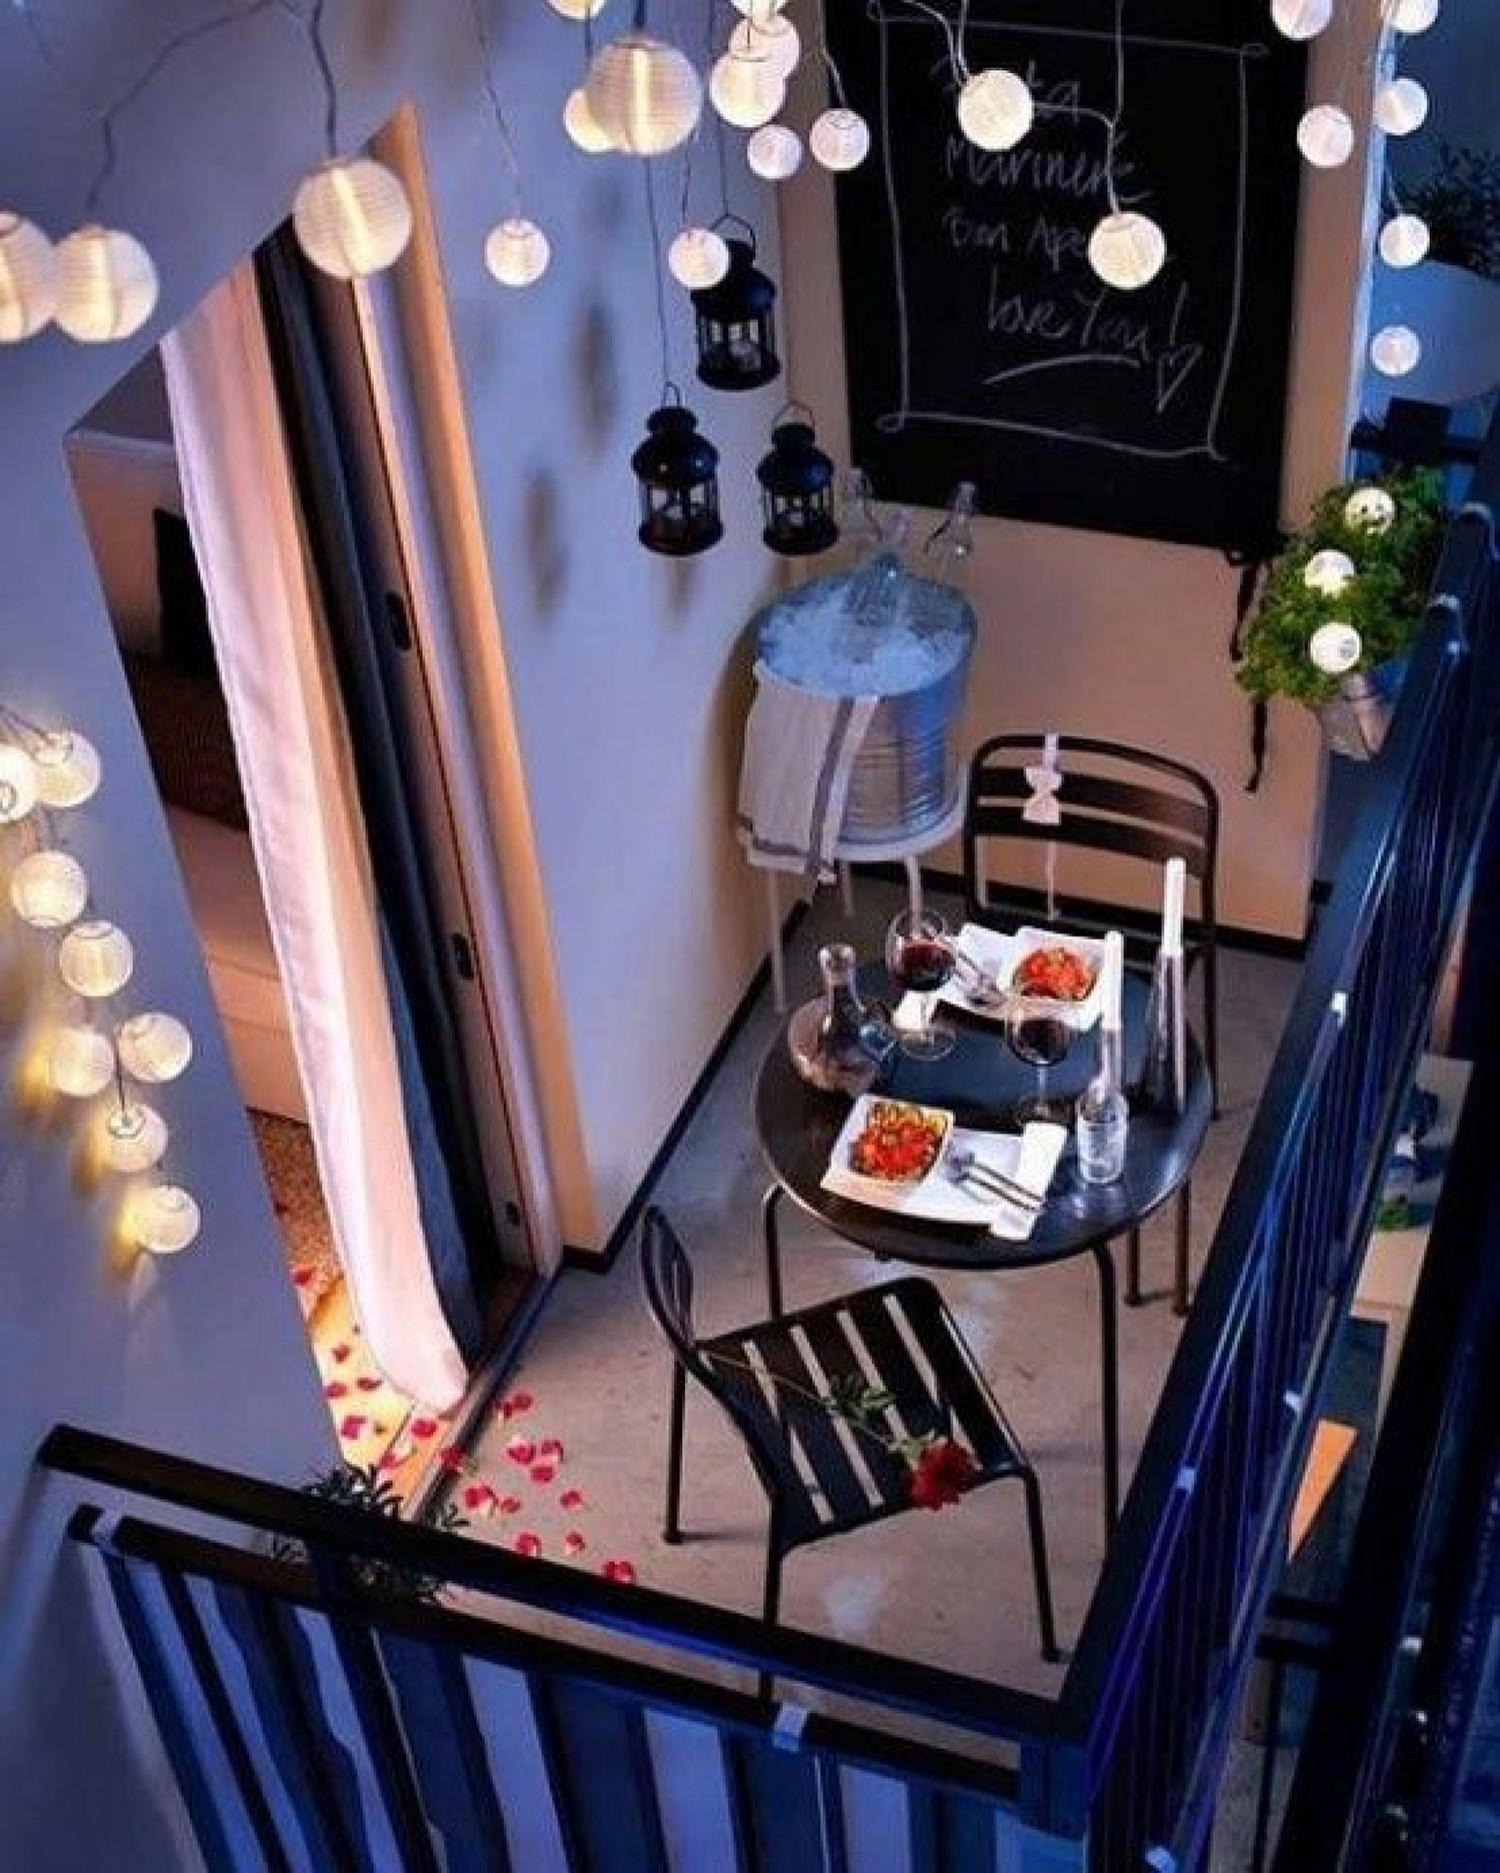 charming-smart-ideas-for-decorating-tiny-balcony-apartment-current-2016_decorate-balcony-apartment_apartment_how-to-design-a-studio-apartment-your-own-apartments-desi